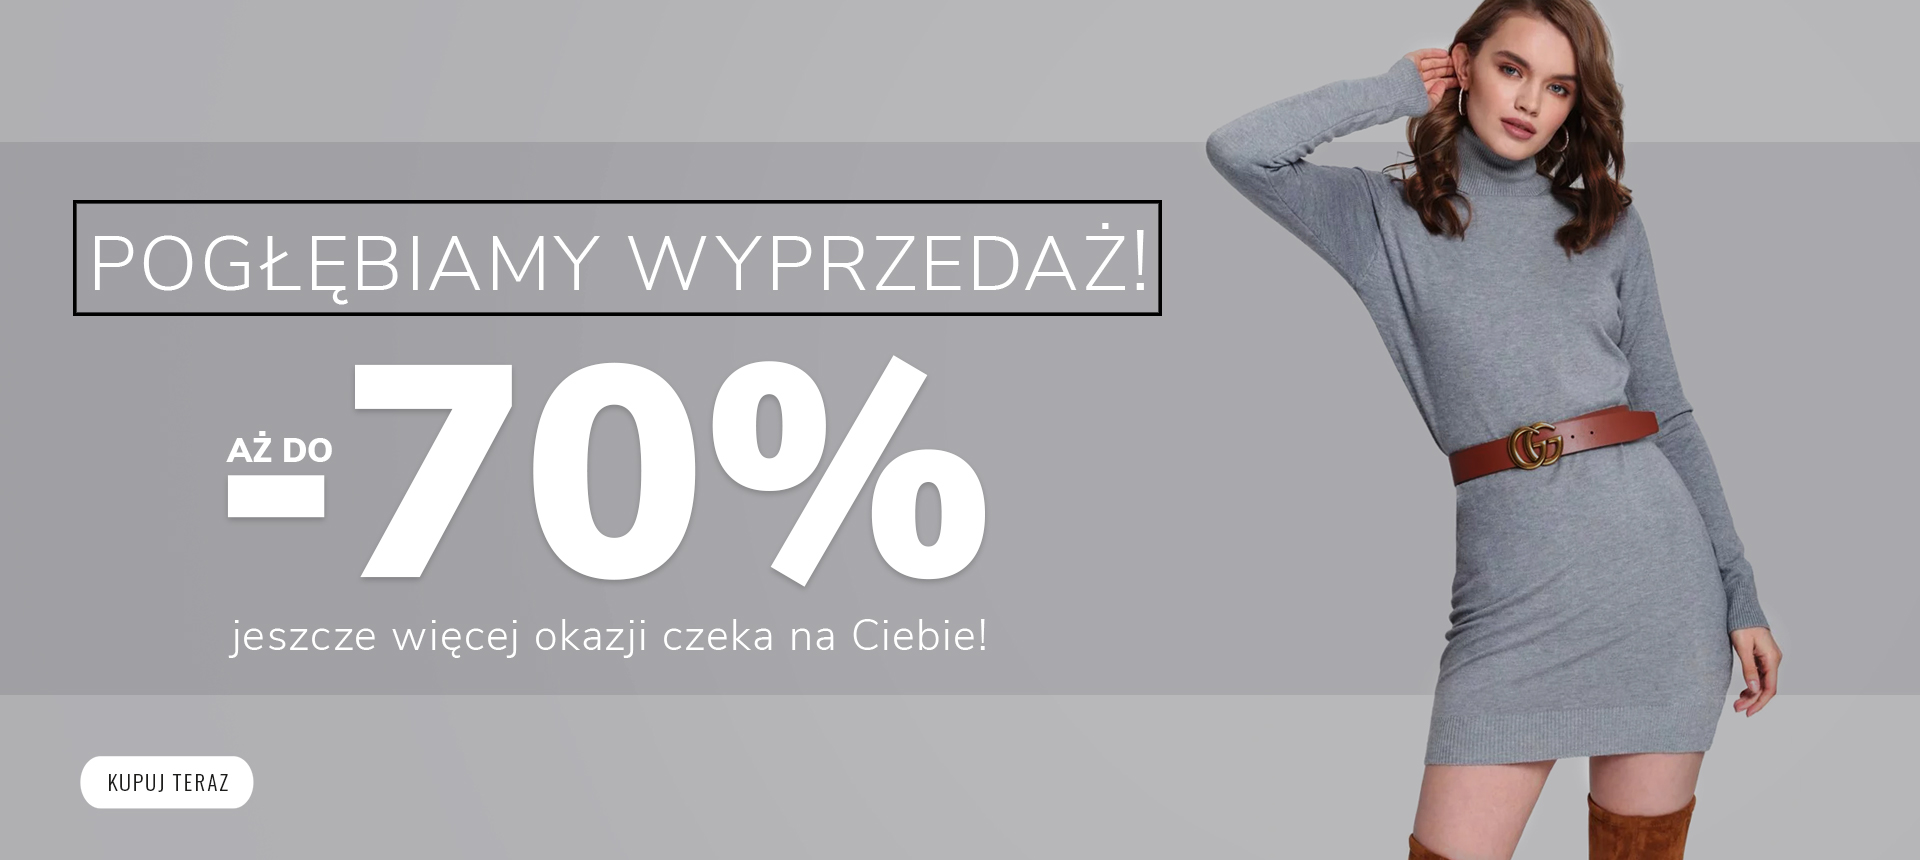 SALE, aż do -70%